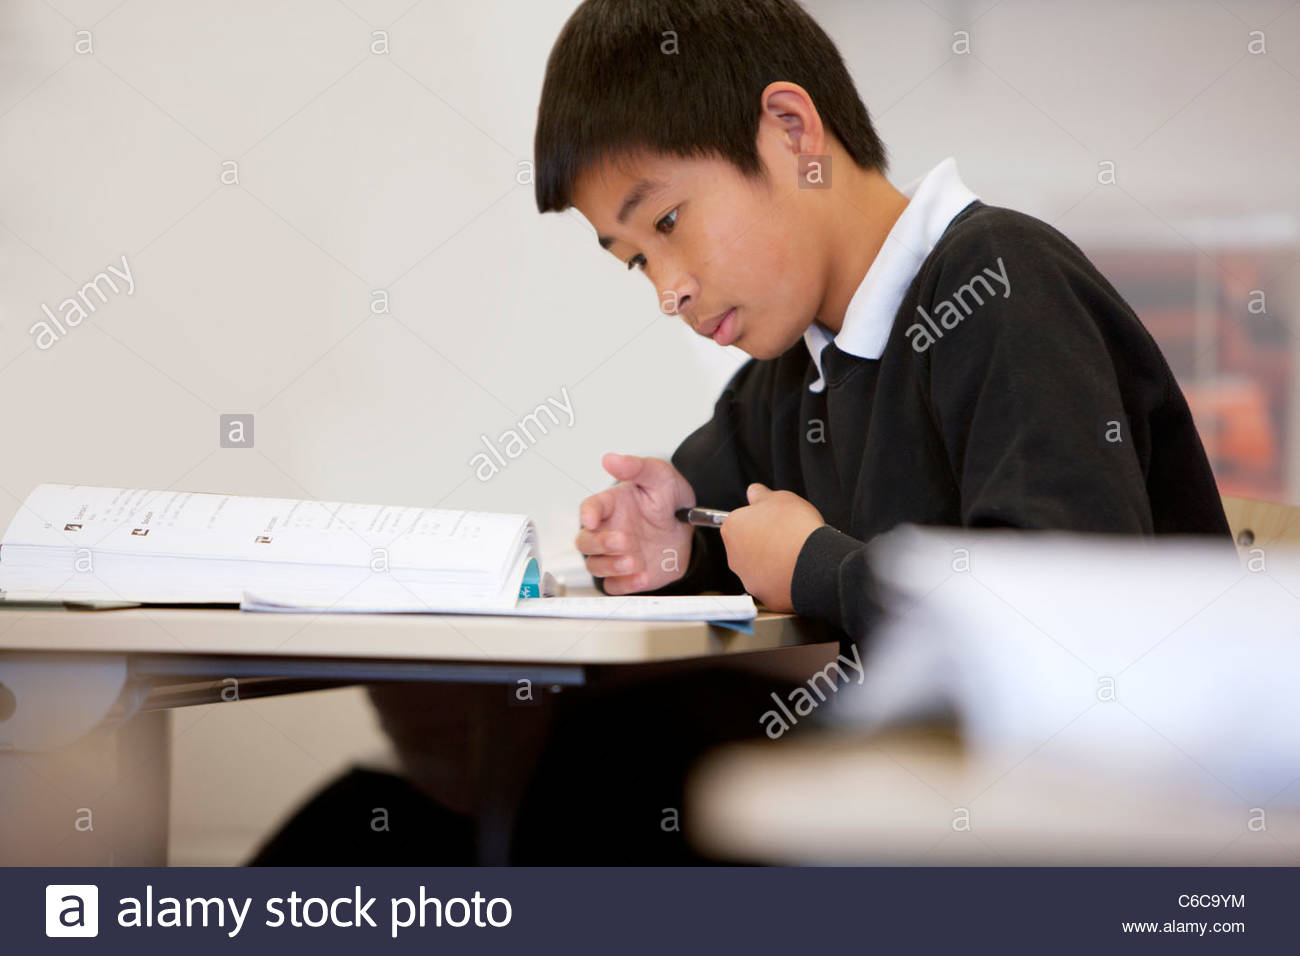 Focused boy doing homework at desk in classroom - Stock Image